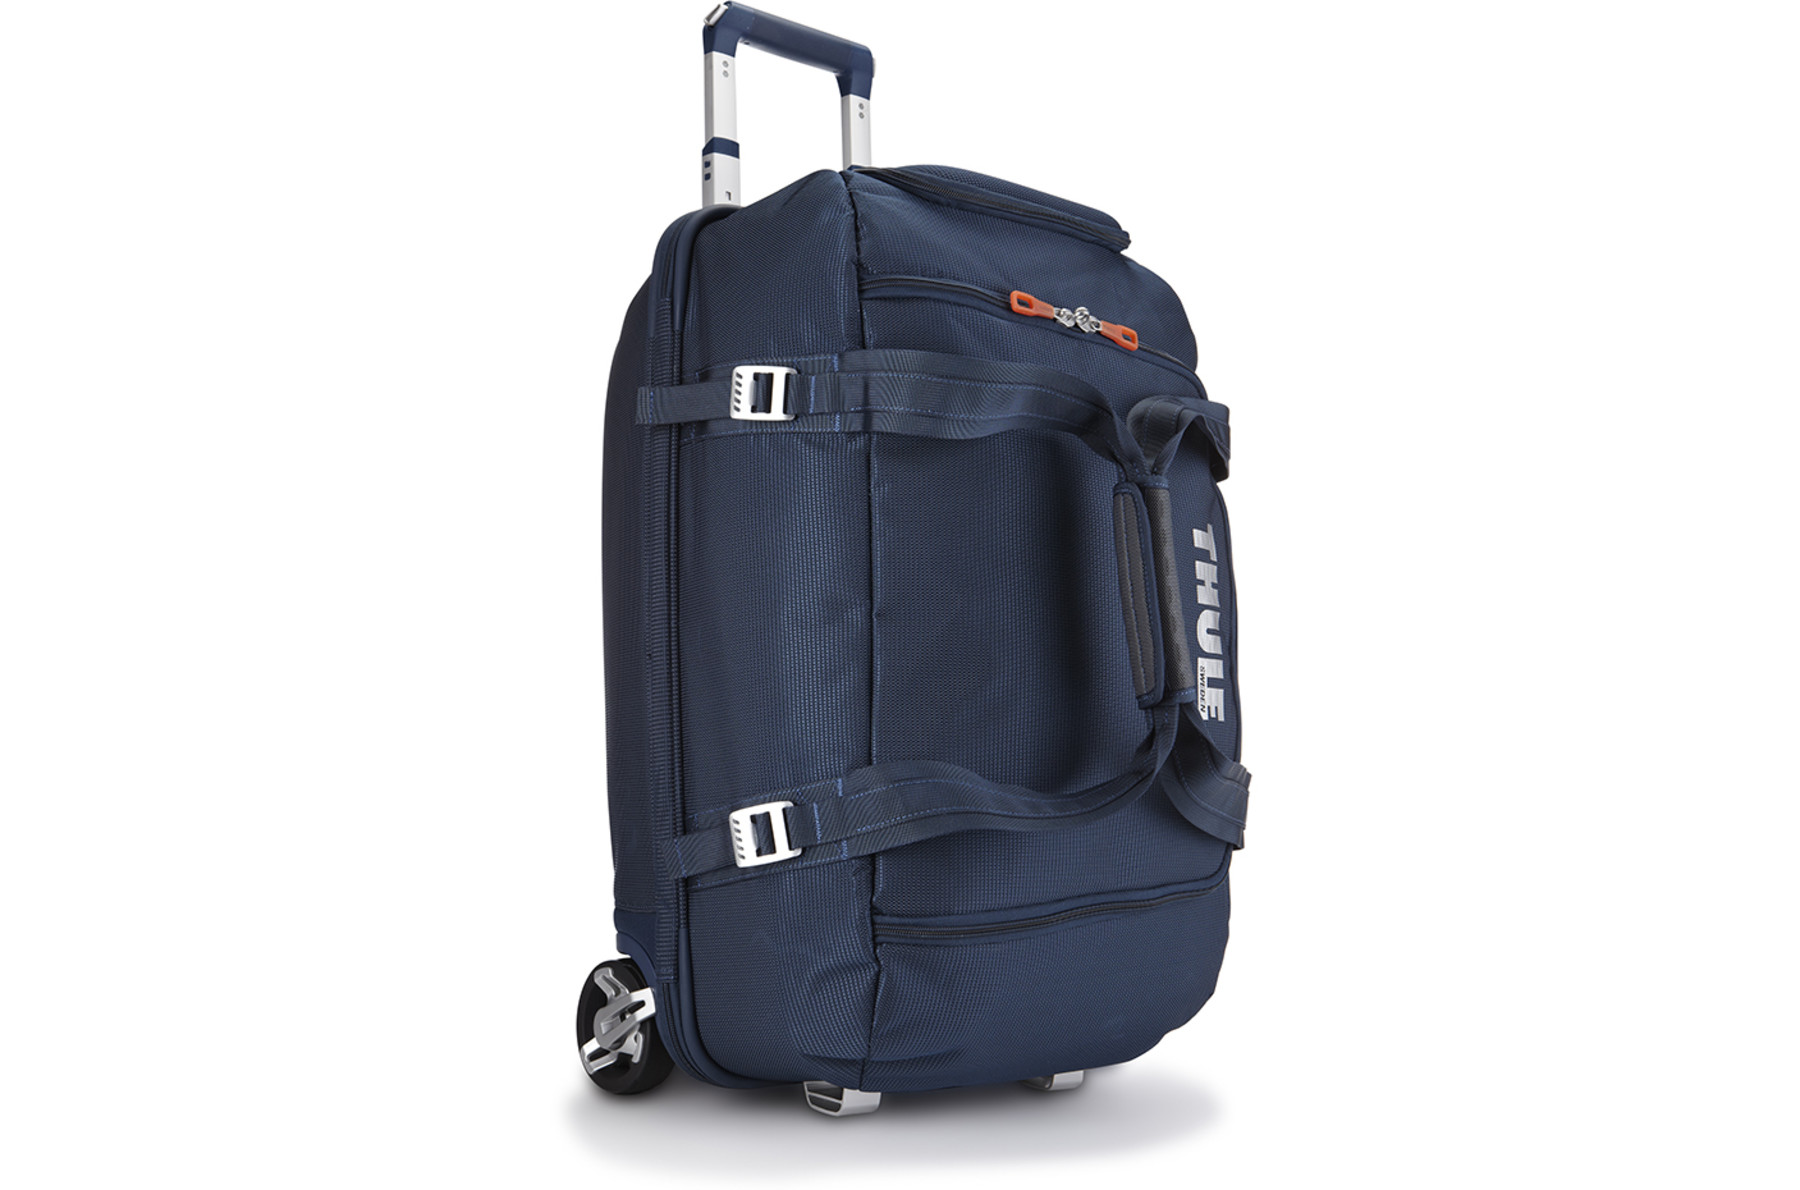 Thule Crossover 56L Rolling Duffel azul oscuro